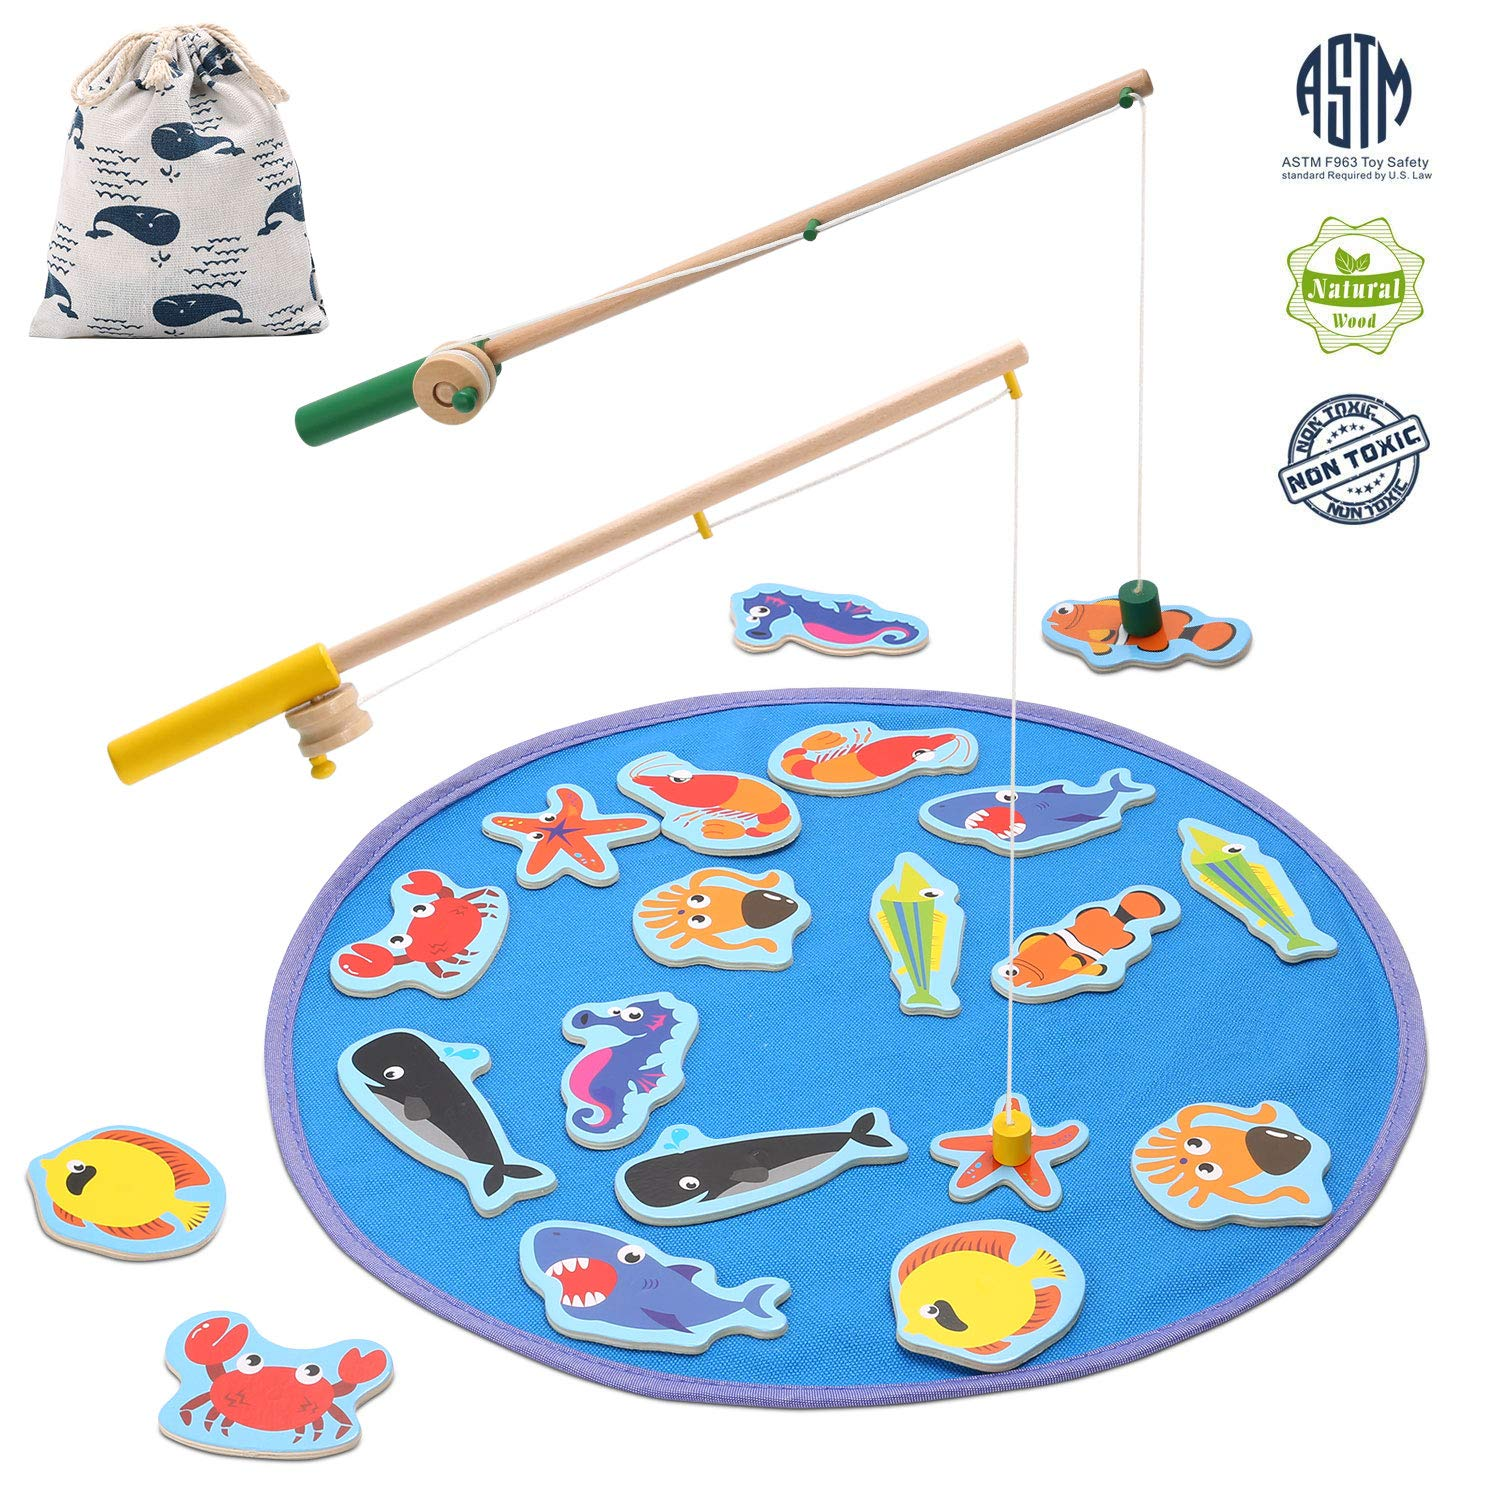 TEPSMIGO Magnetic Wooden Fishing Pole Game for Kids, Educational Go Fish Gaming Gift Toy with 20 Ocean Animals and 2 Rods for Toddler Boys Girls Age 3+